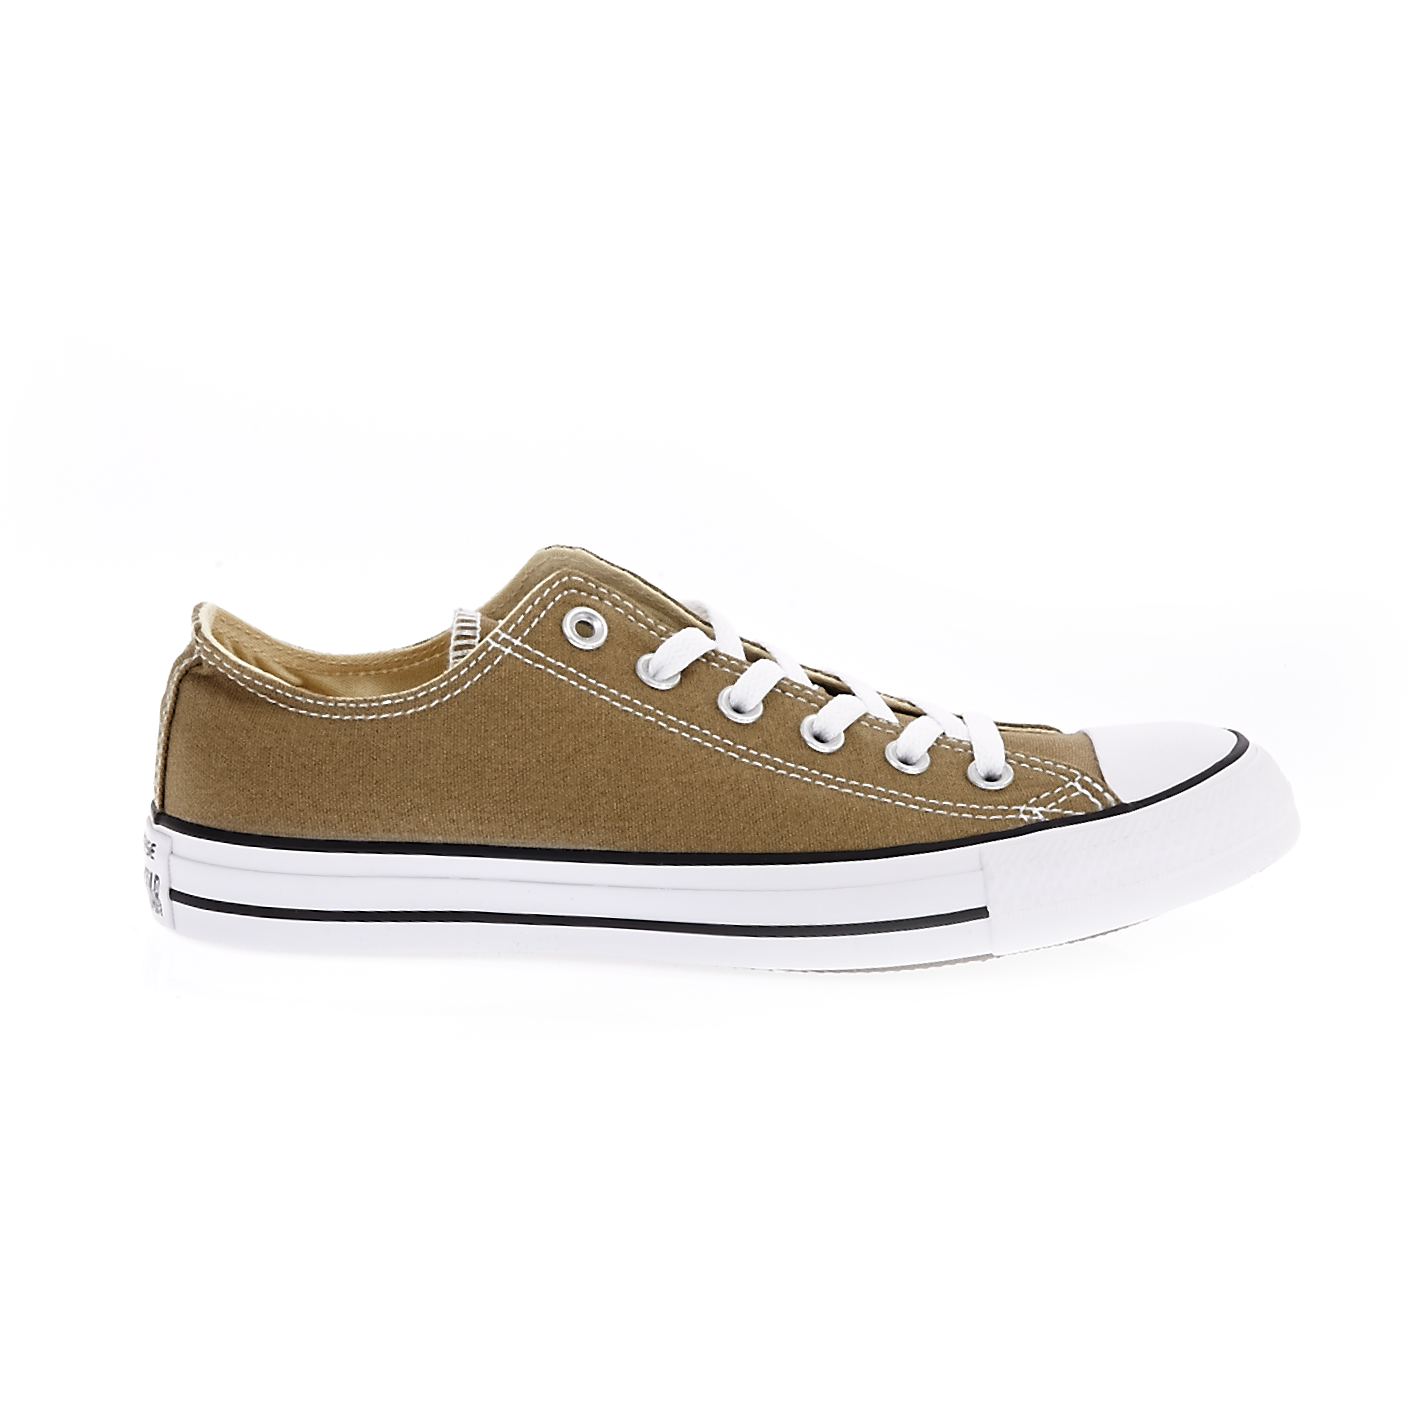 CONVERSE – Unisex παπούτσια Chuck Taylor All Star Ox καφέ